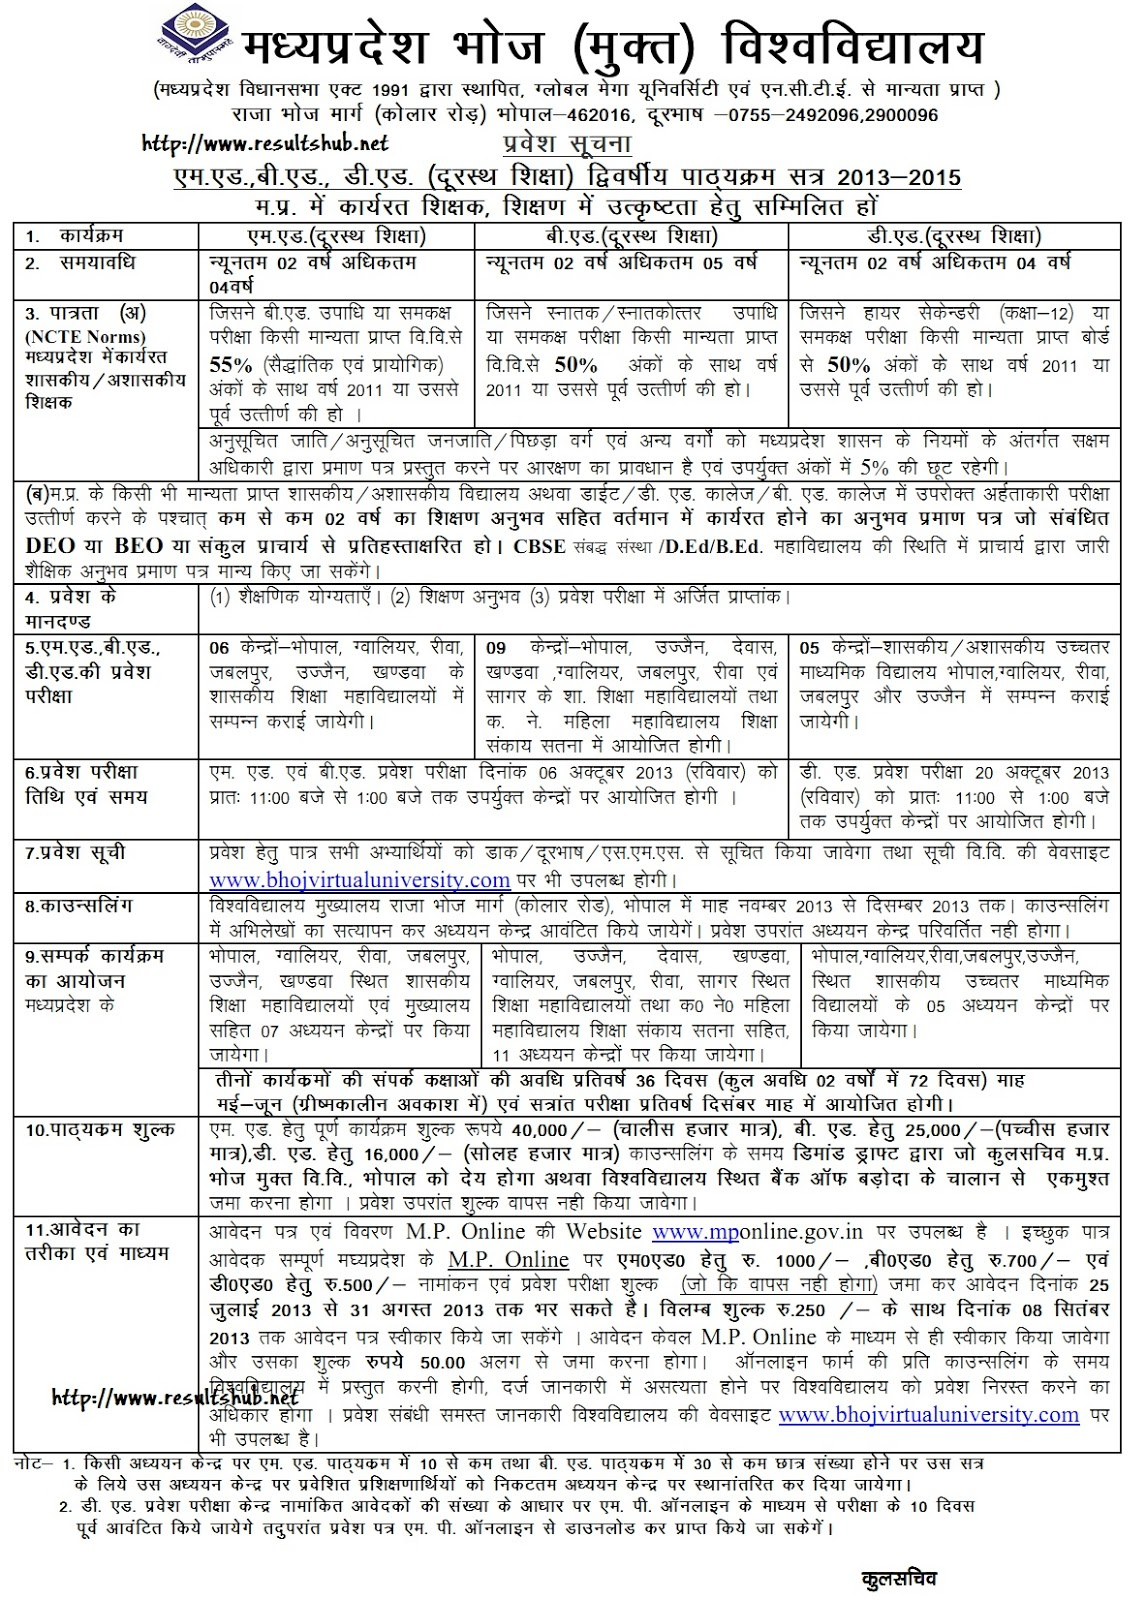 Ignou bhopal bed assignment 2014